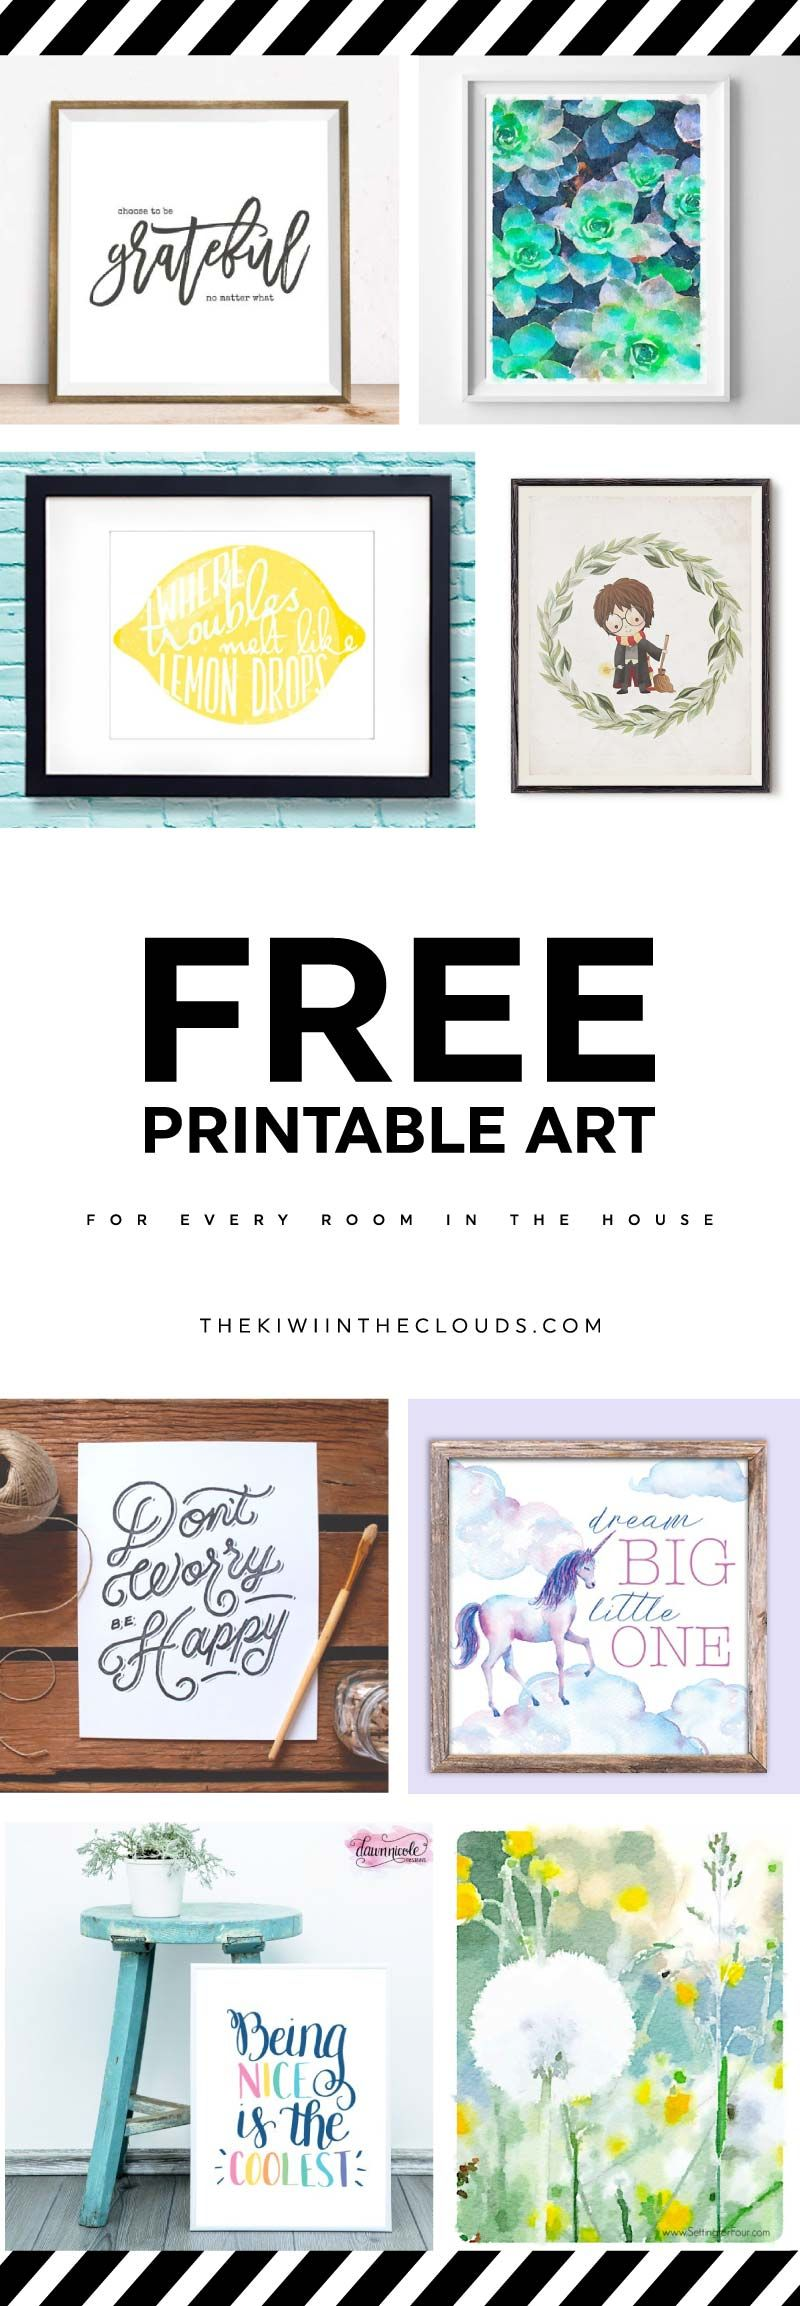 free printable art for the home | gallery wall images | inspirational art #art #freeprintables